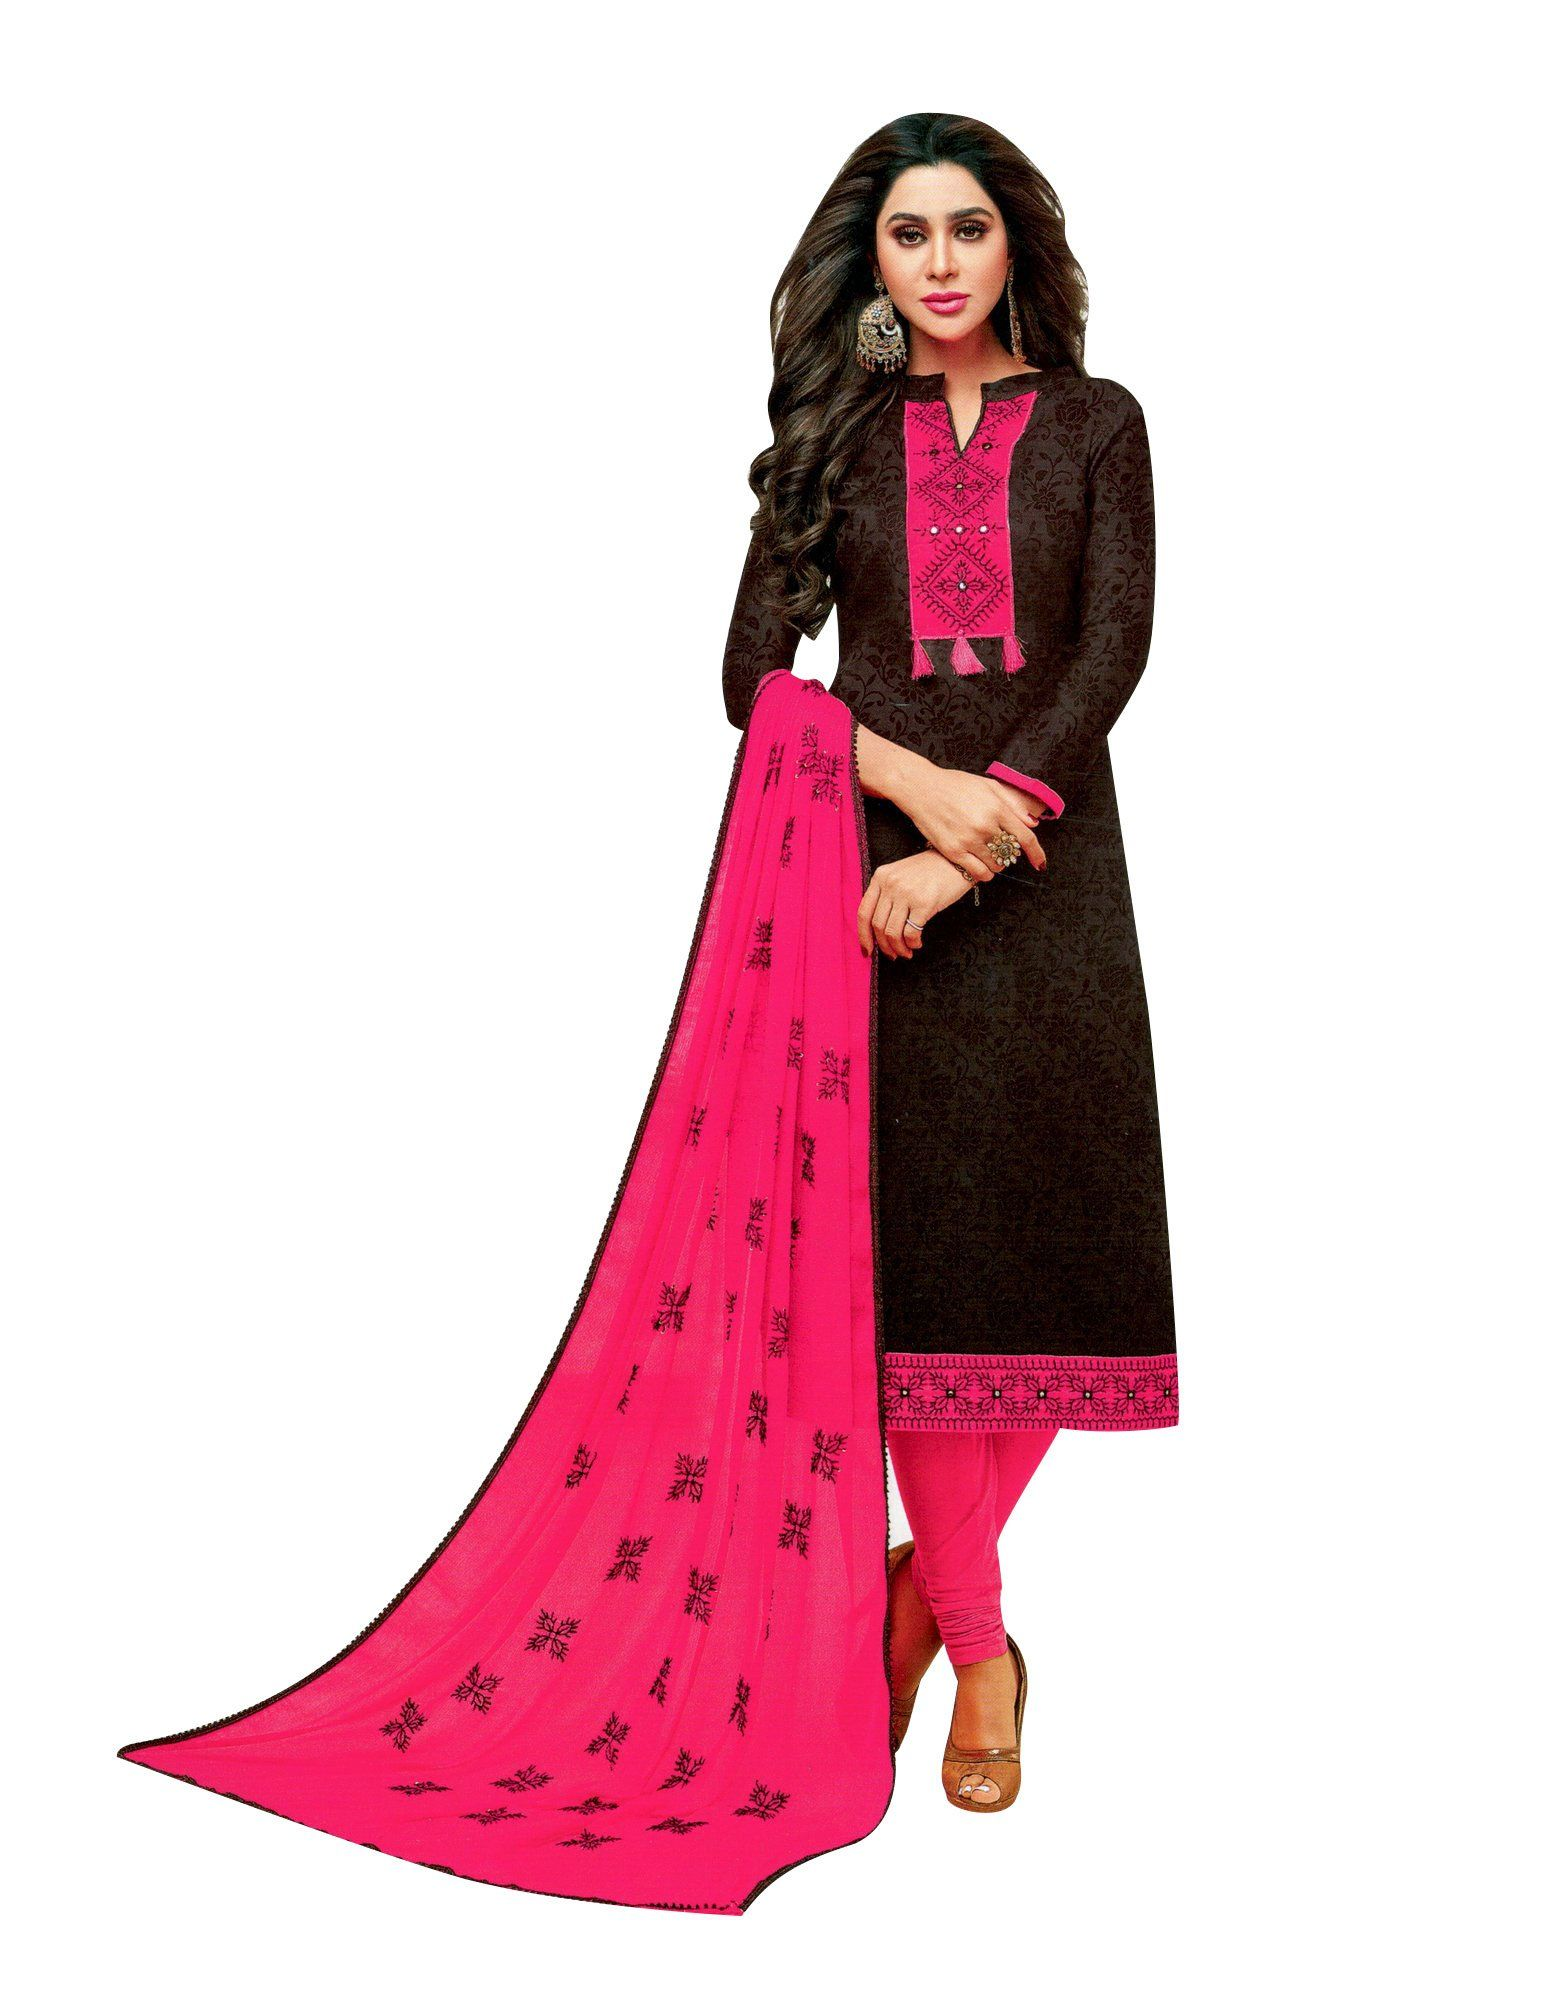 2f8b1655d4 Kameez is Cotton silk fabric plain with light sober embroidery on front and  beautiful neck patterns same as shown in the pic. Dupatta is beautiful  Rayon ...